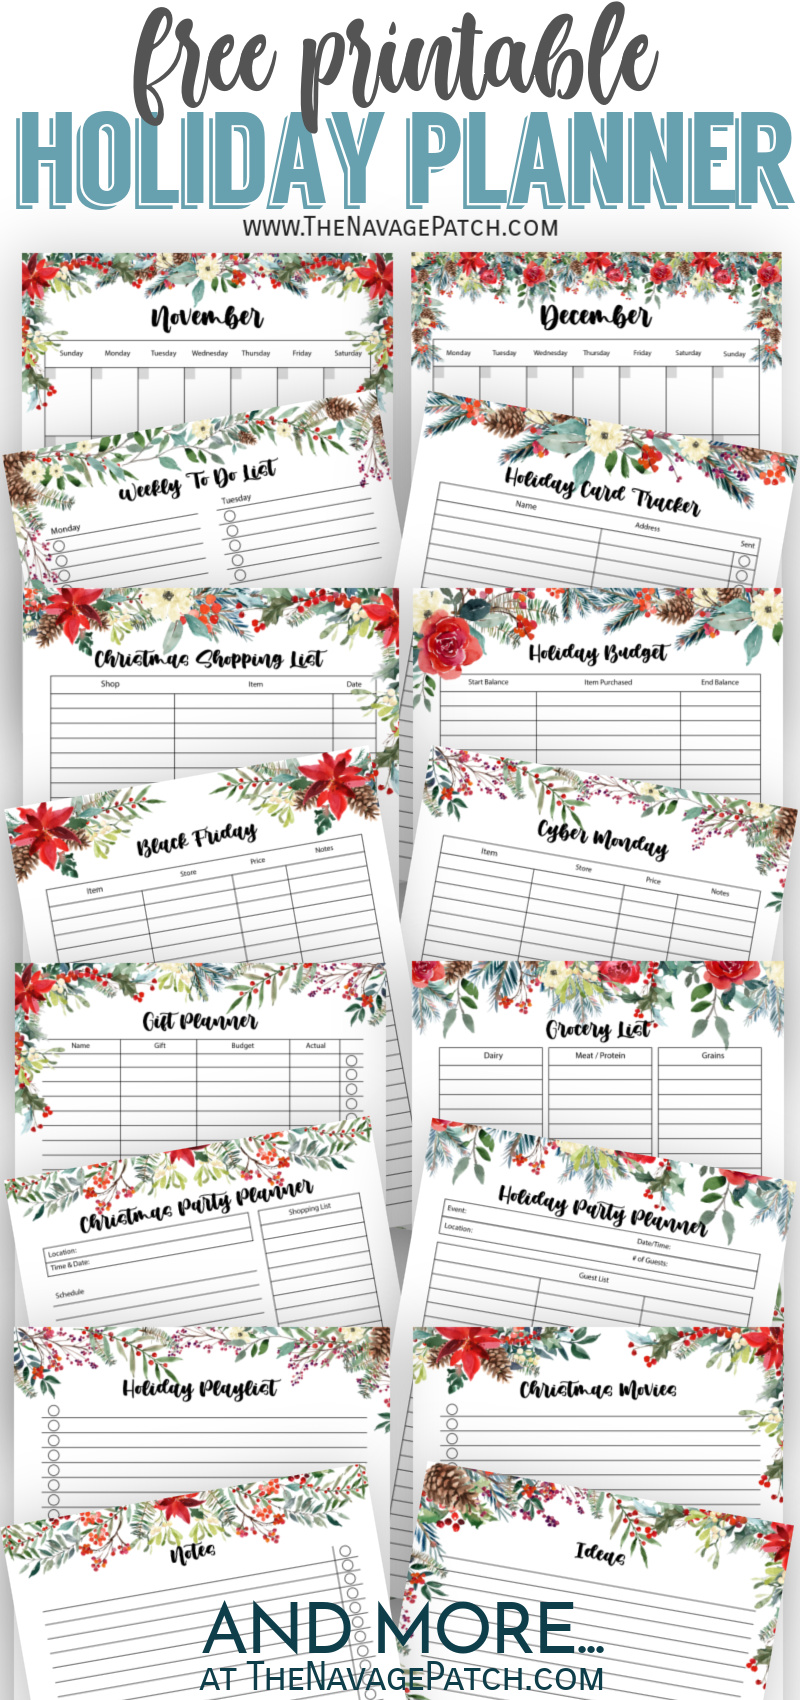 Free Printable Holiday Planner by TheNavagePatch.com